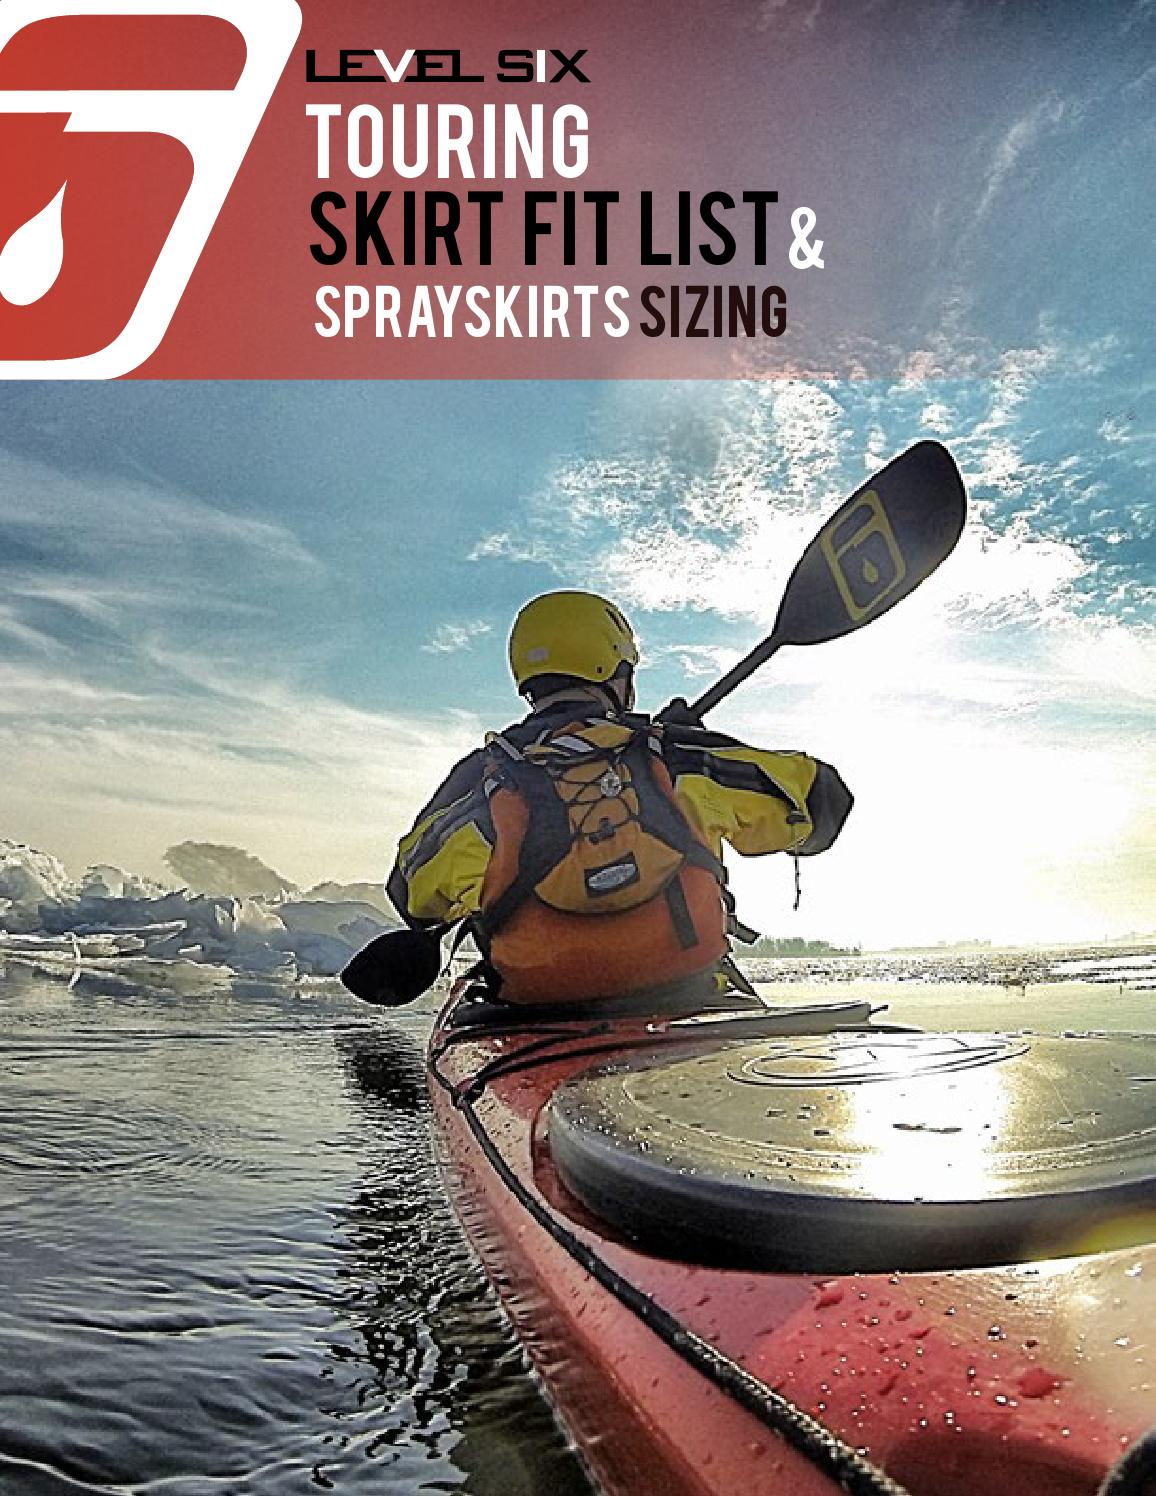 Level Six Touring Sprayskirt Fit List & Sizing by Level Six - issuu